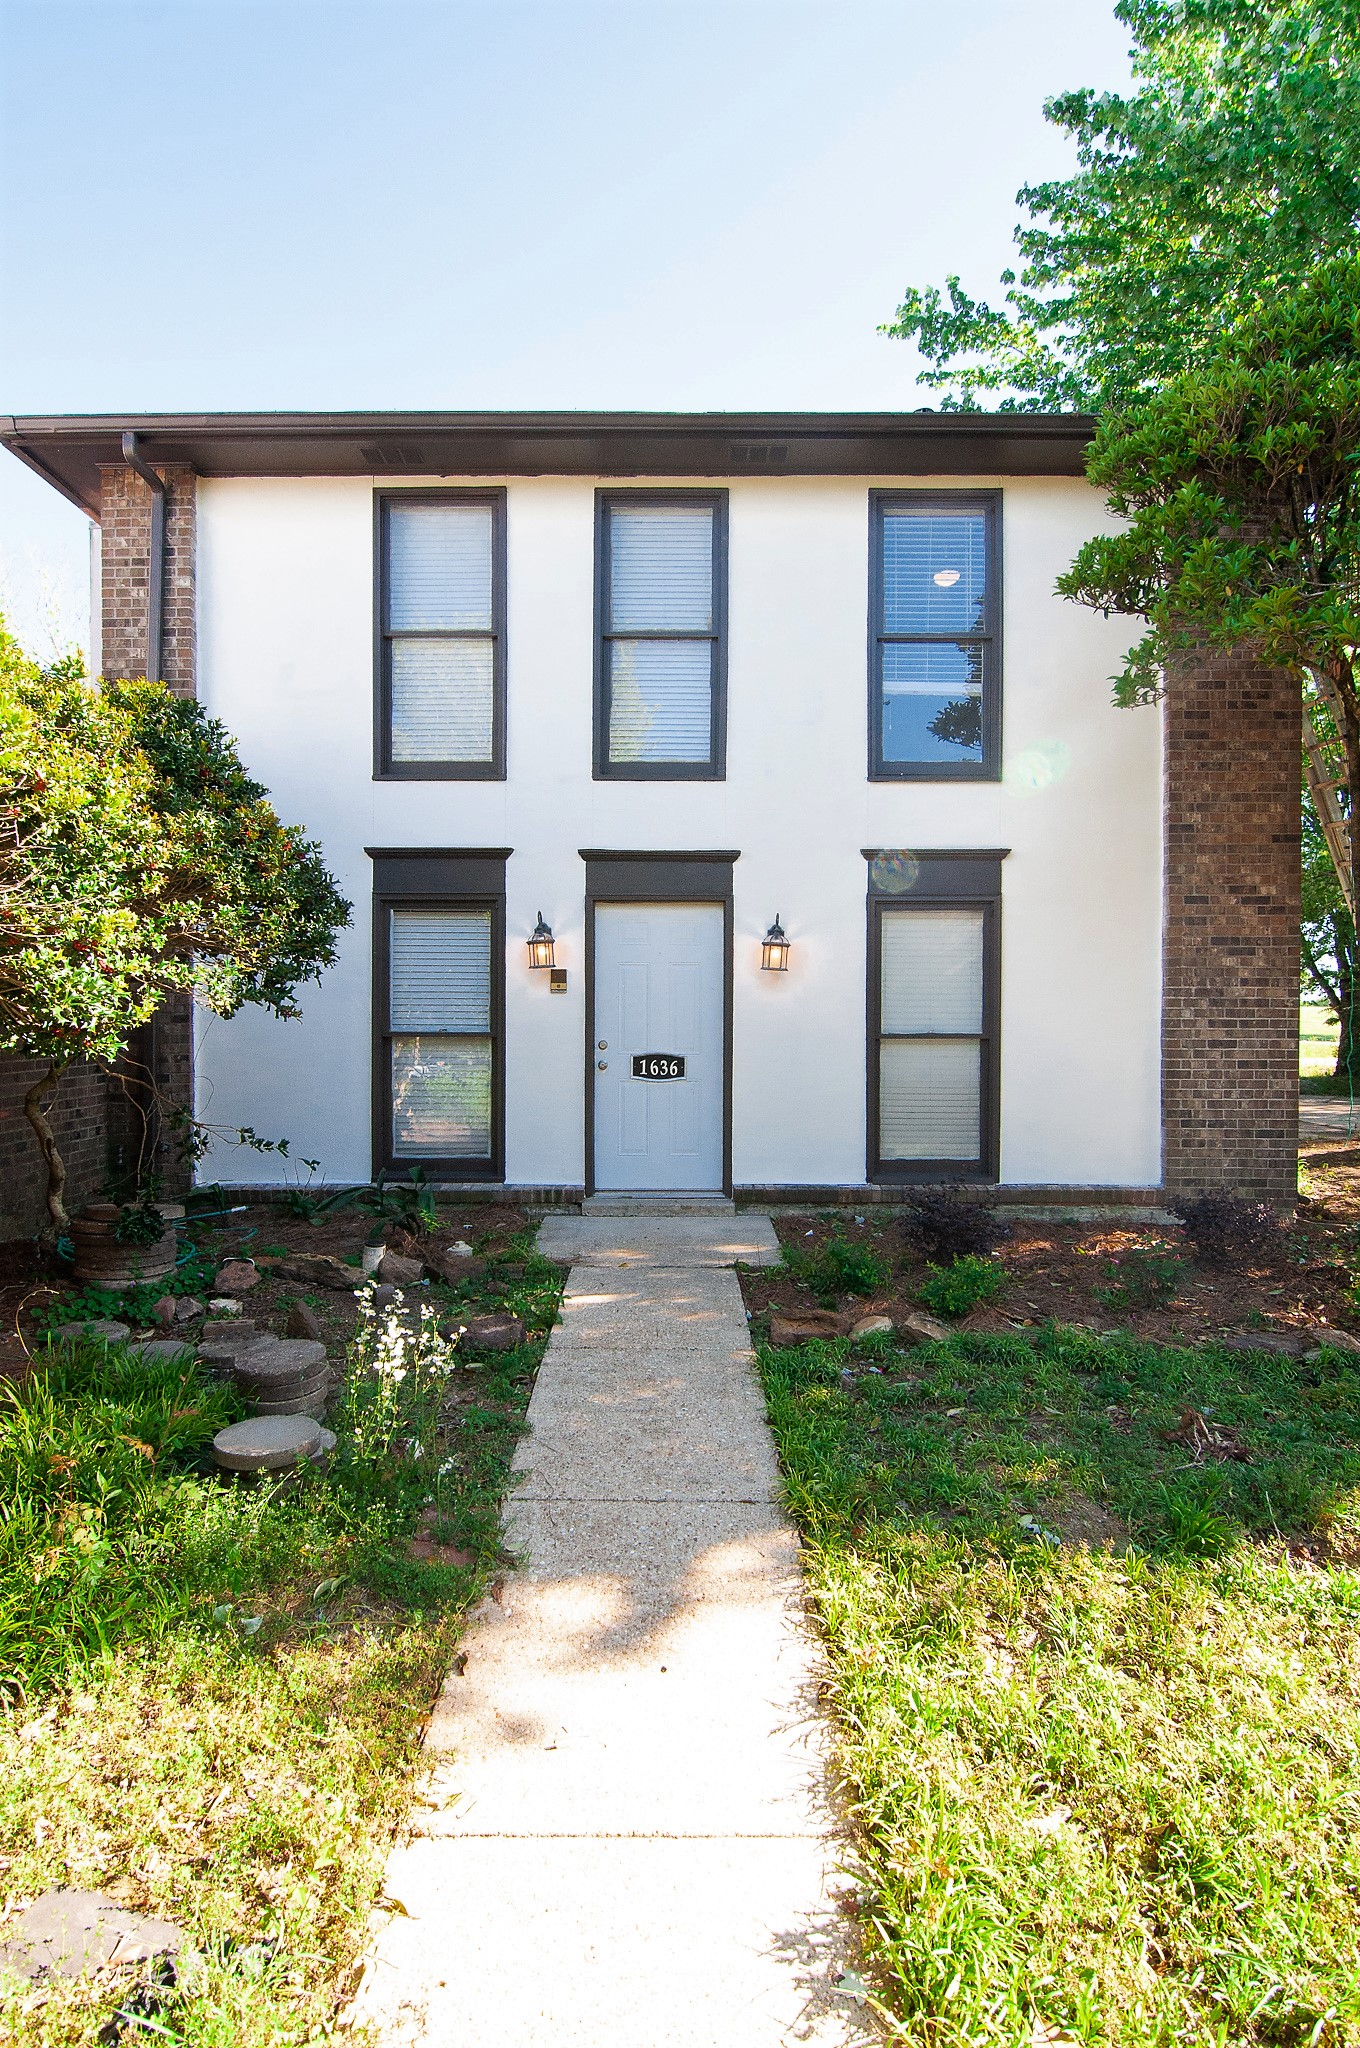 FOR RENT IN MONTGOMERY! 3 BED 2 BATH AT 1636 COBBLESTONE COURT